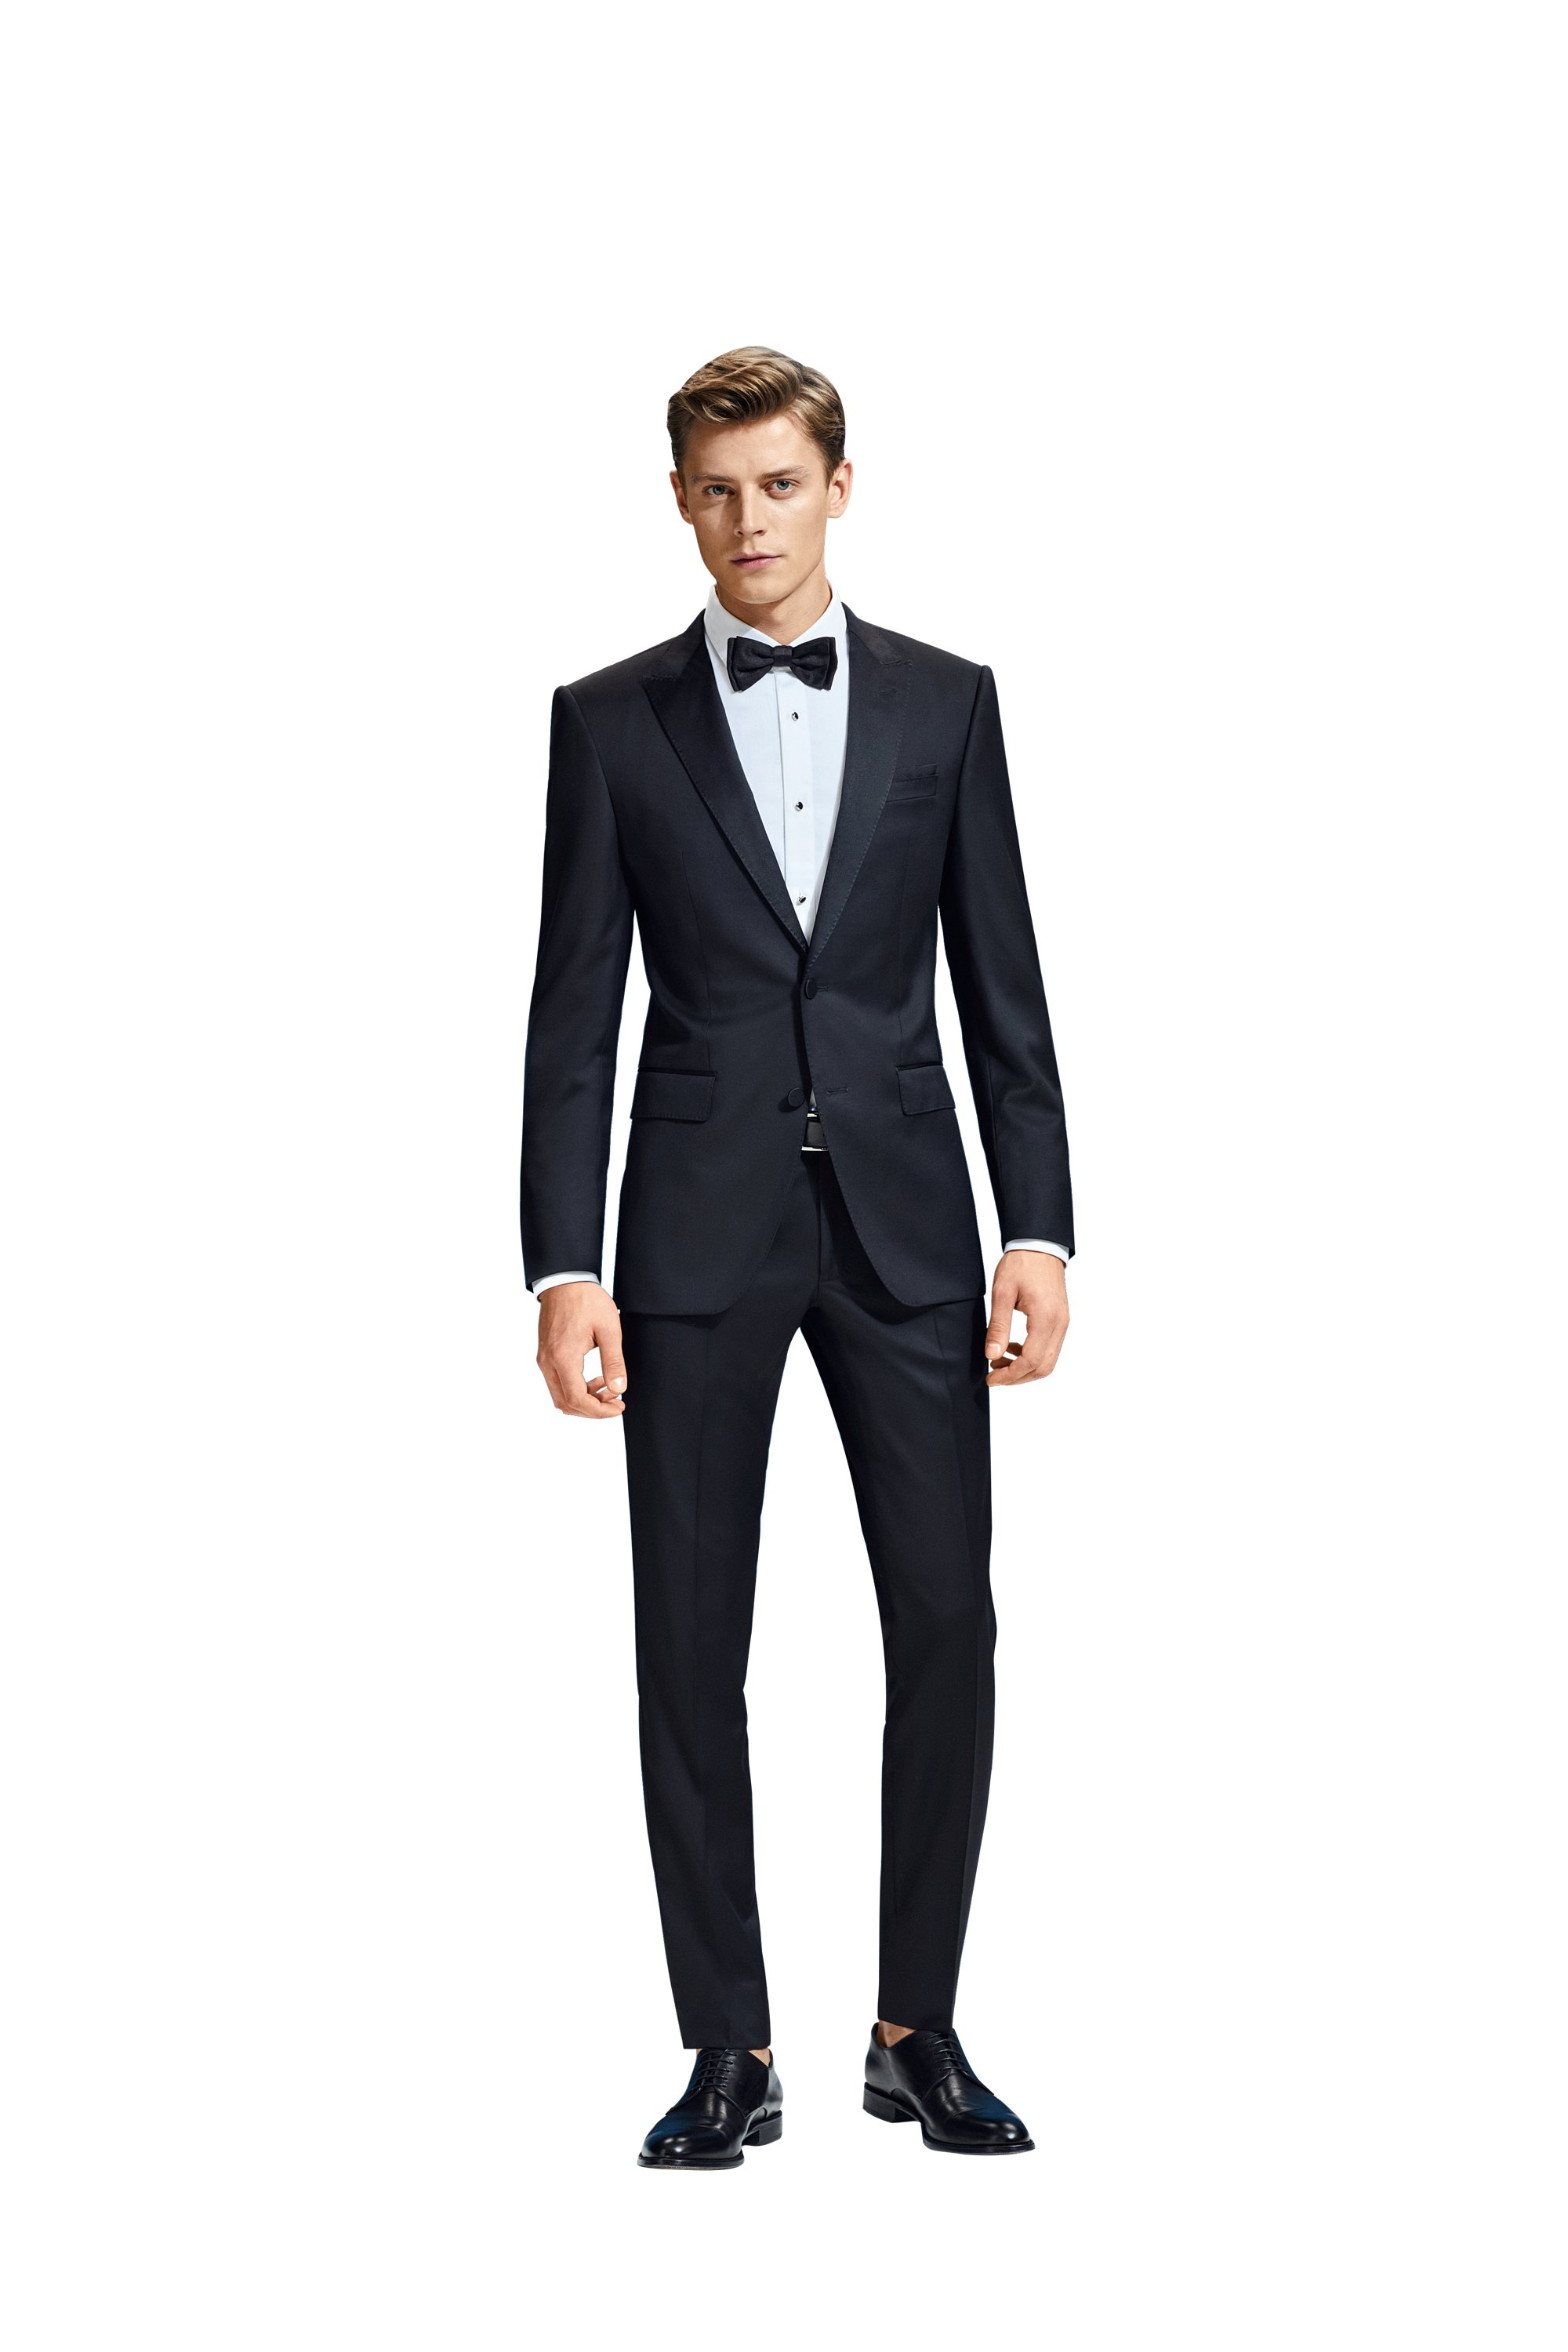 BOSS_Men_S17SR_wedding_Look_45,